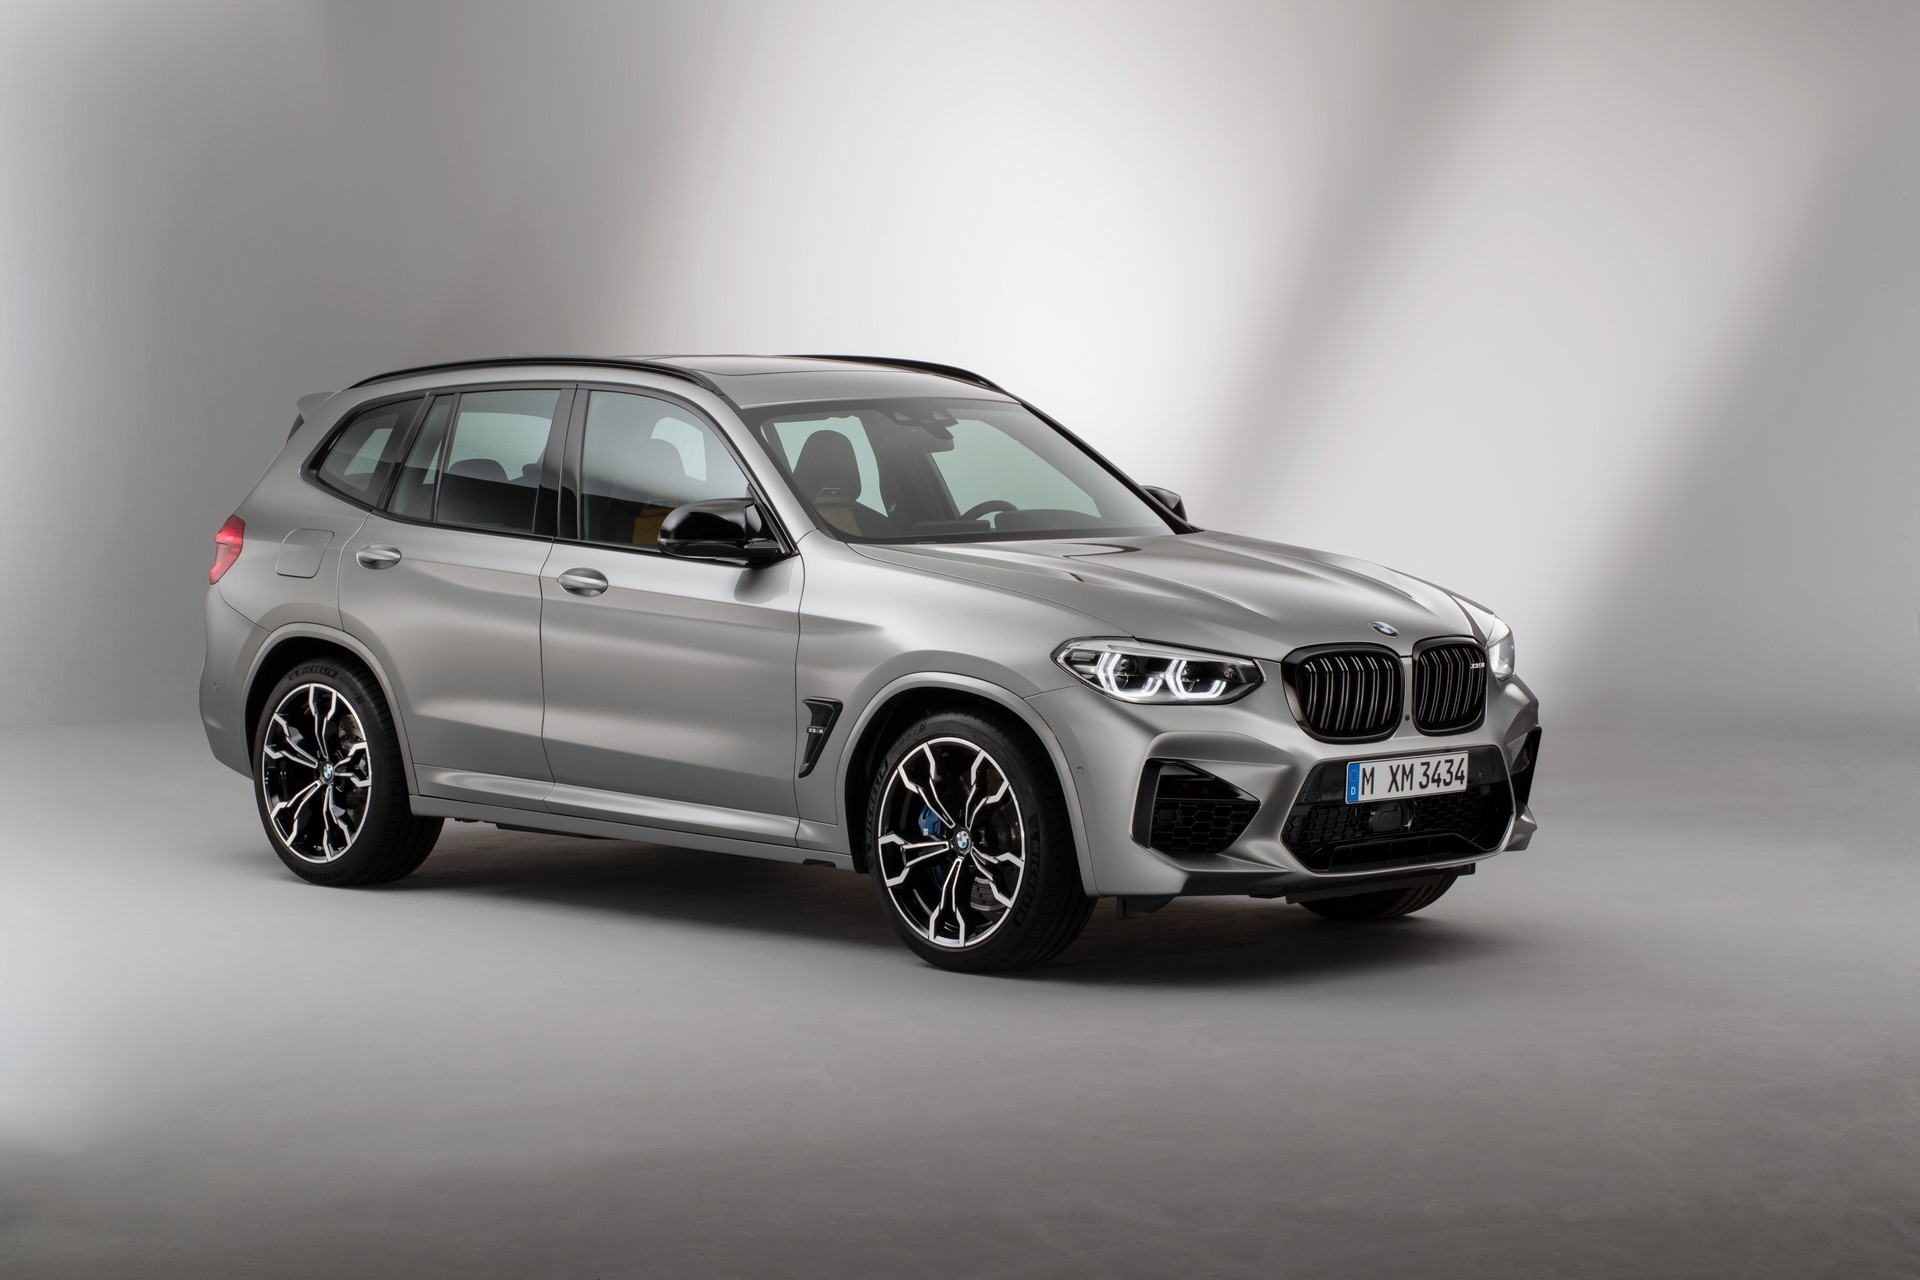 BMW X3 M and X4 M 2019 (186)